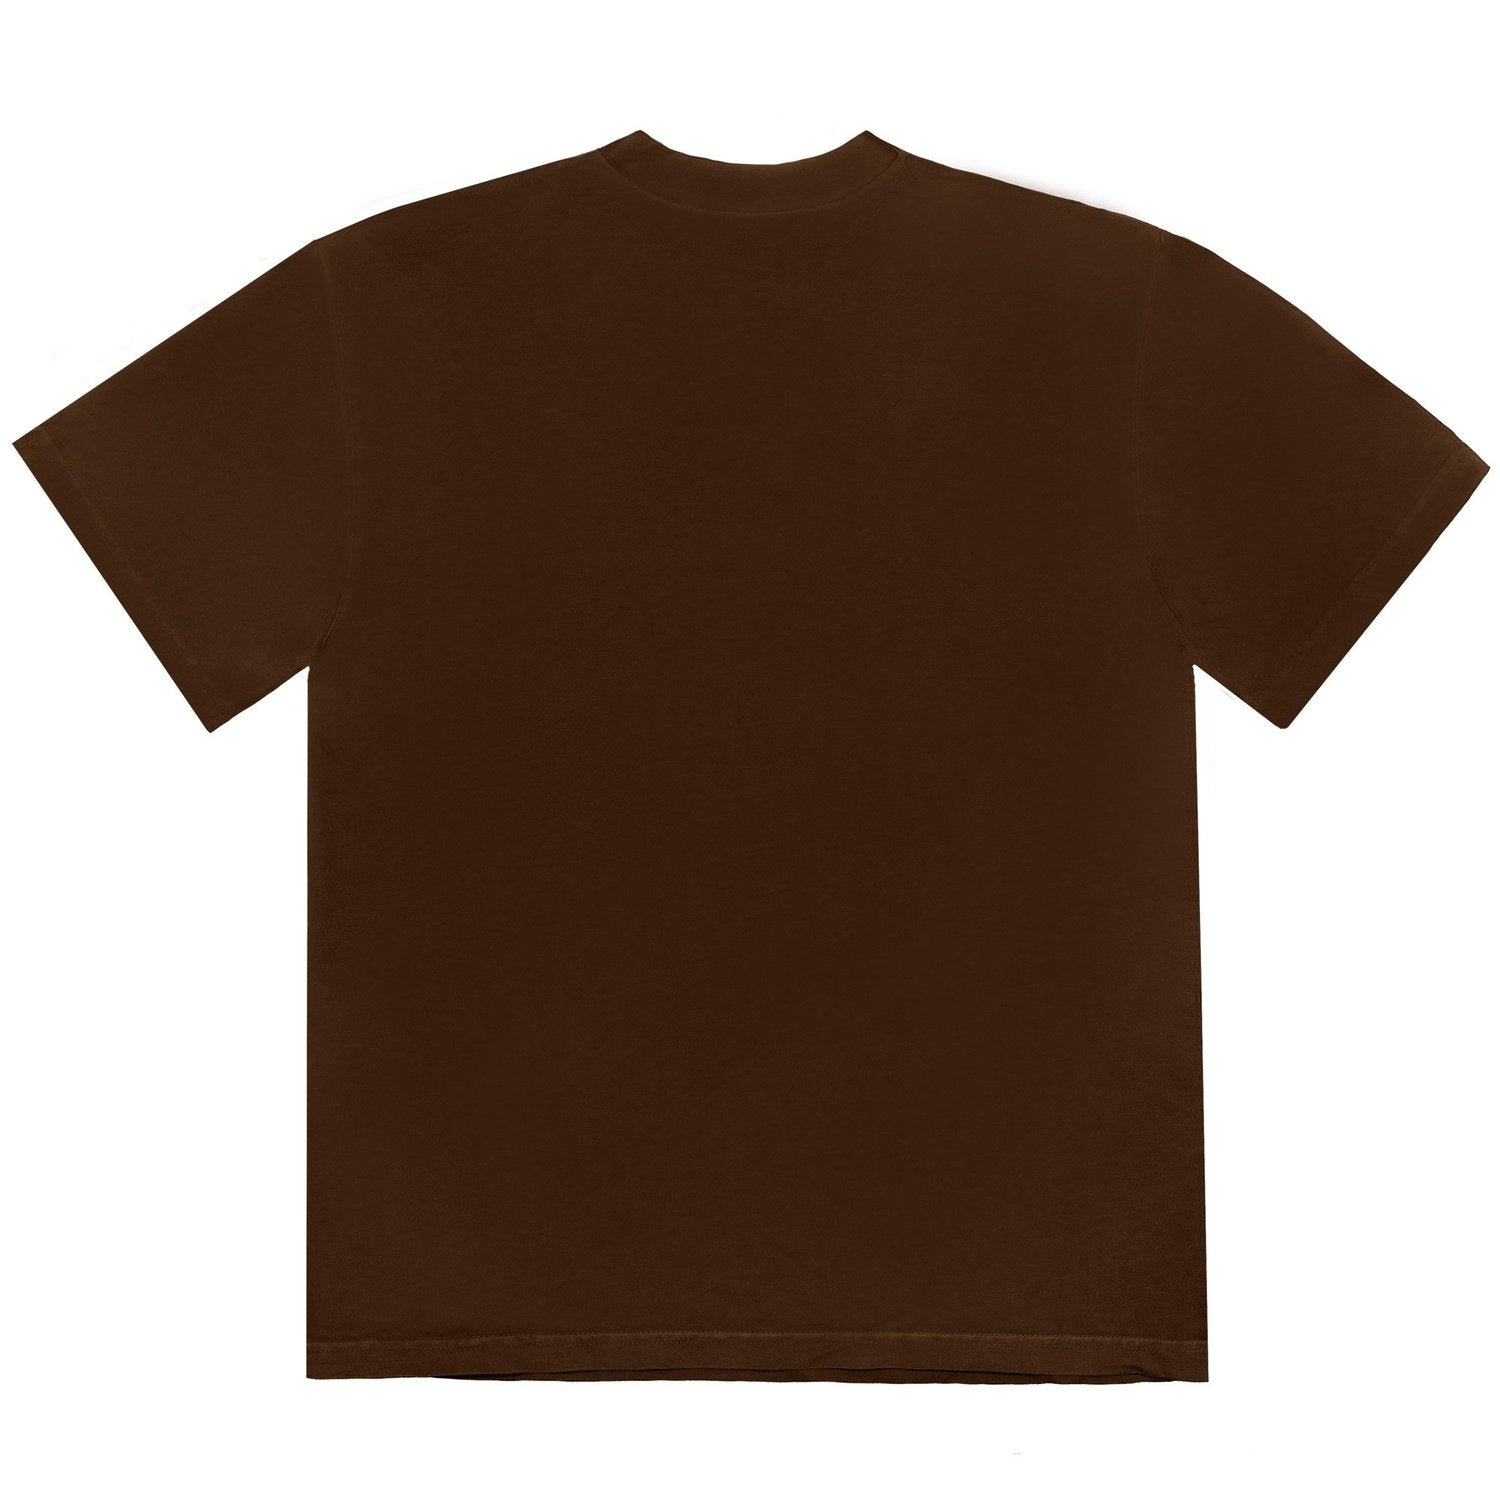 Travis Scott McDonald's McNugget Squad Brown T-Shirt